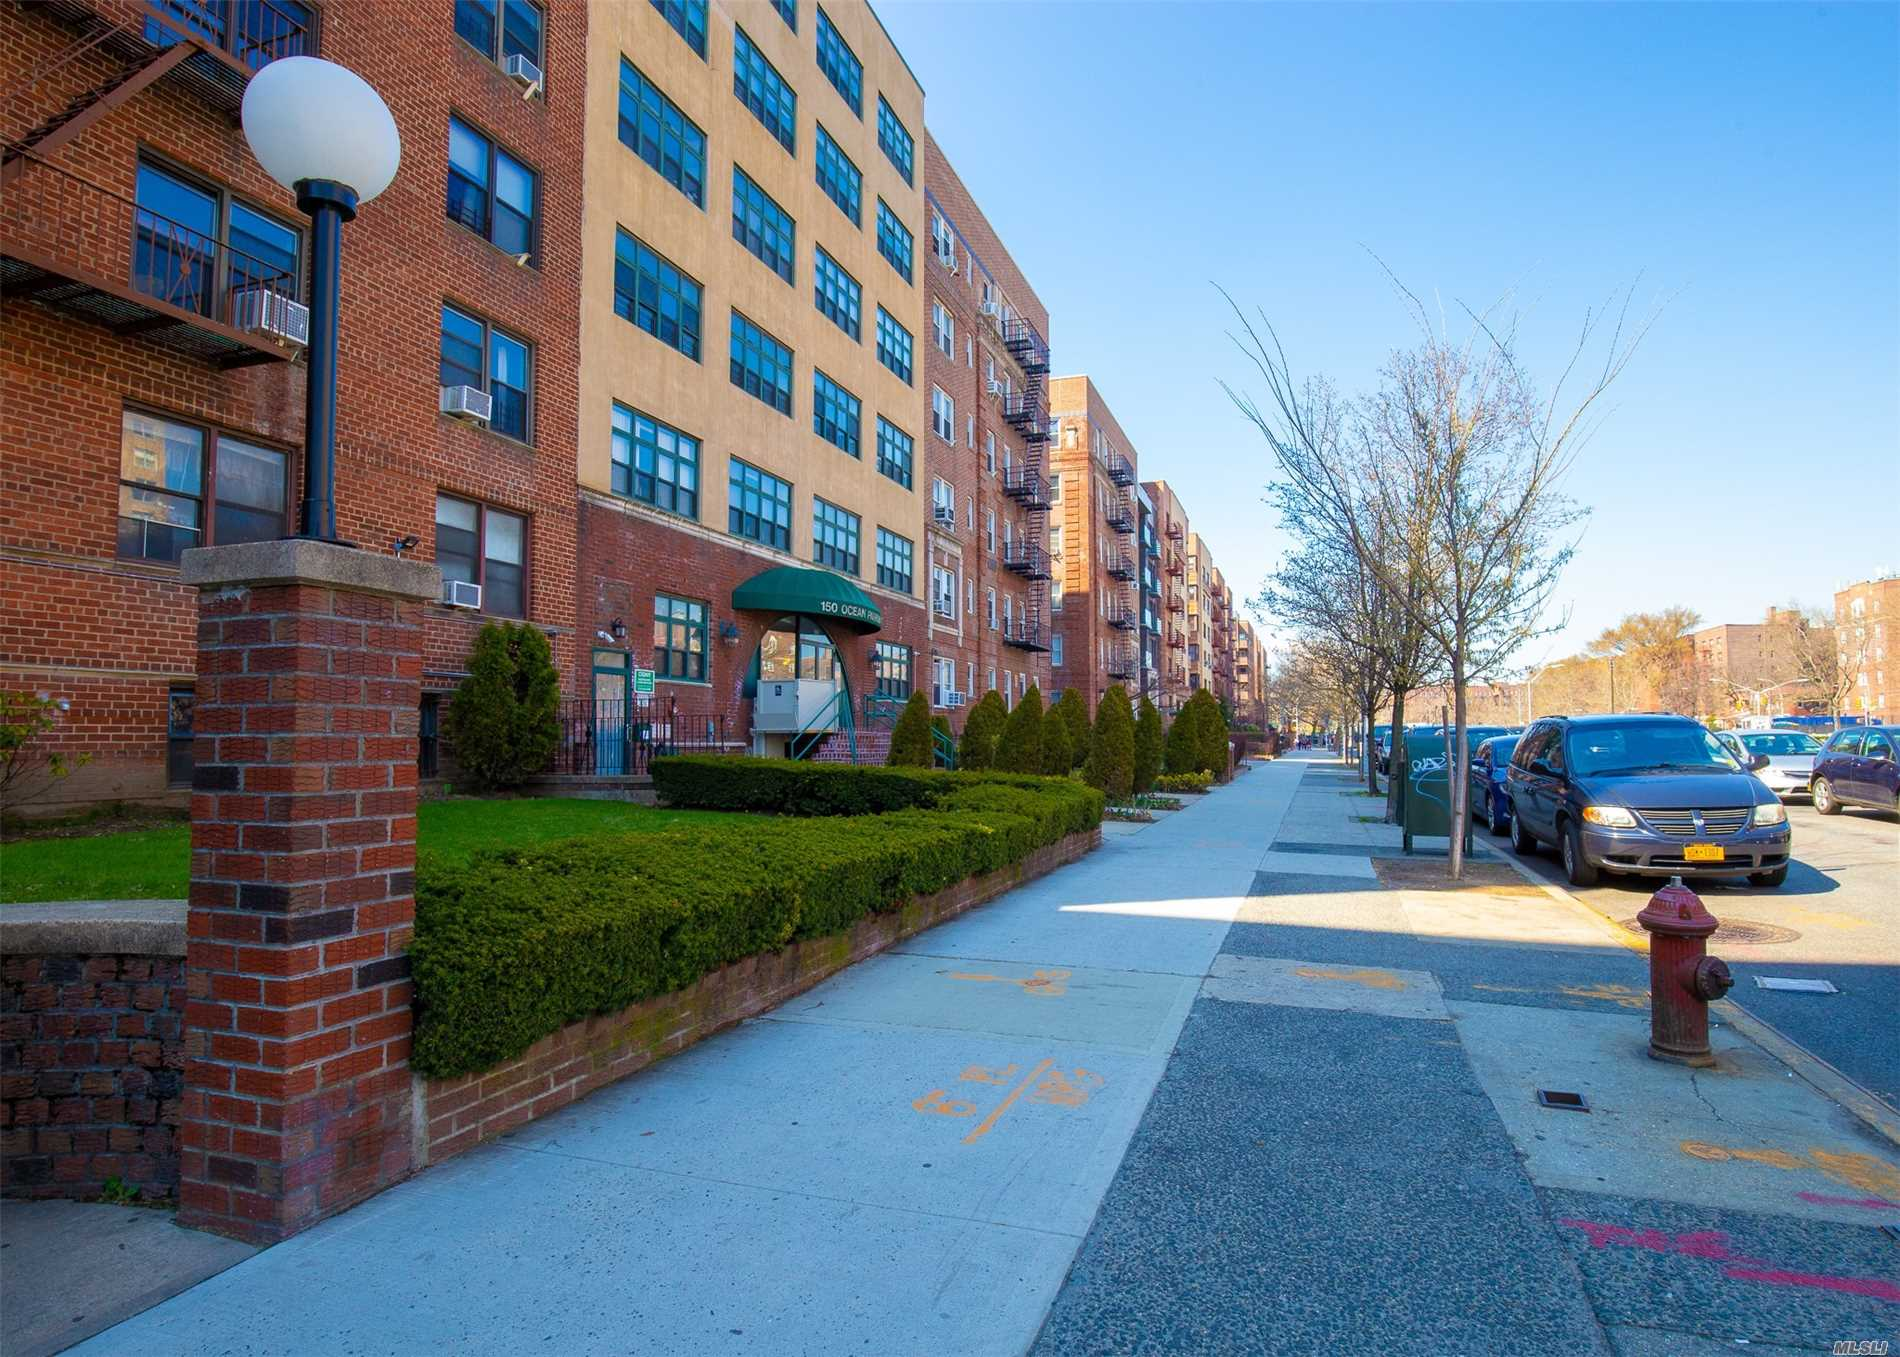 Outstanding diamond 1 Bdrm Co-Op with Hard wood Flrs stone kit flrs entire house was updated 3 years ago. Close to all. F & G Train 2 blocks away B-16 Caton Ave and B6 & 7 Church st buses near by. Park slope and Coney Island the best of both worlds.